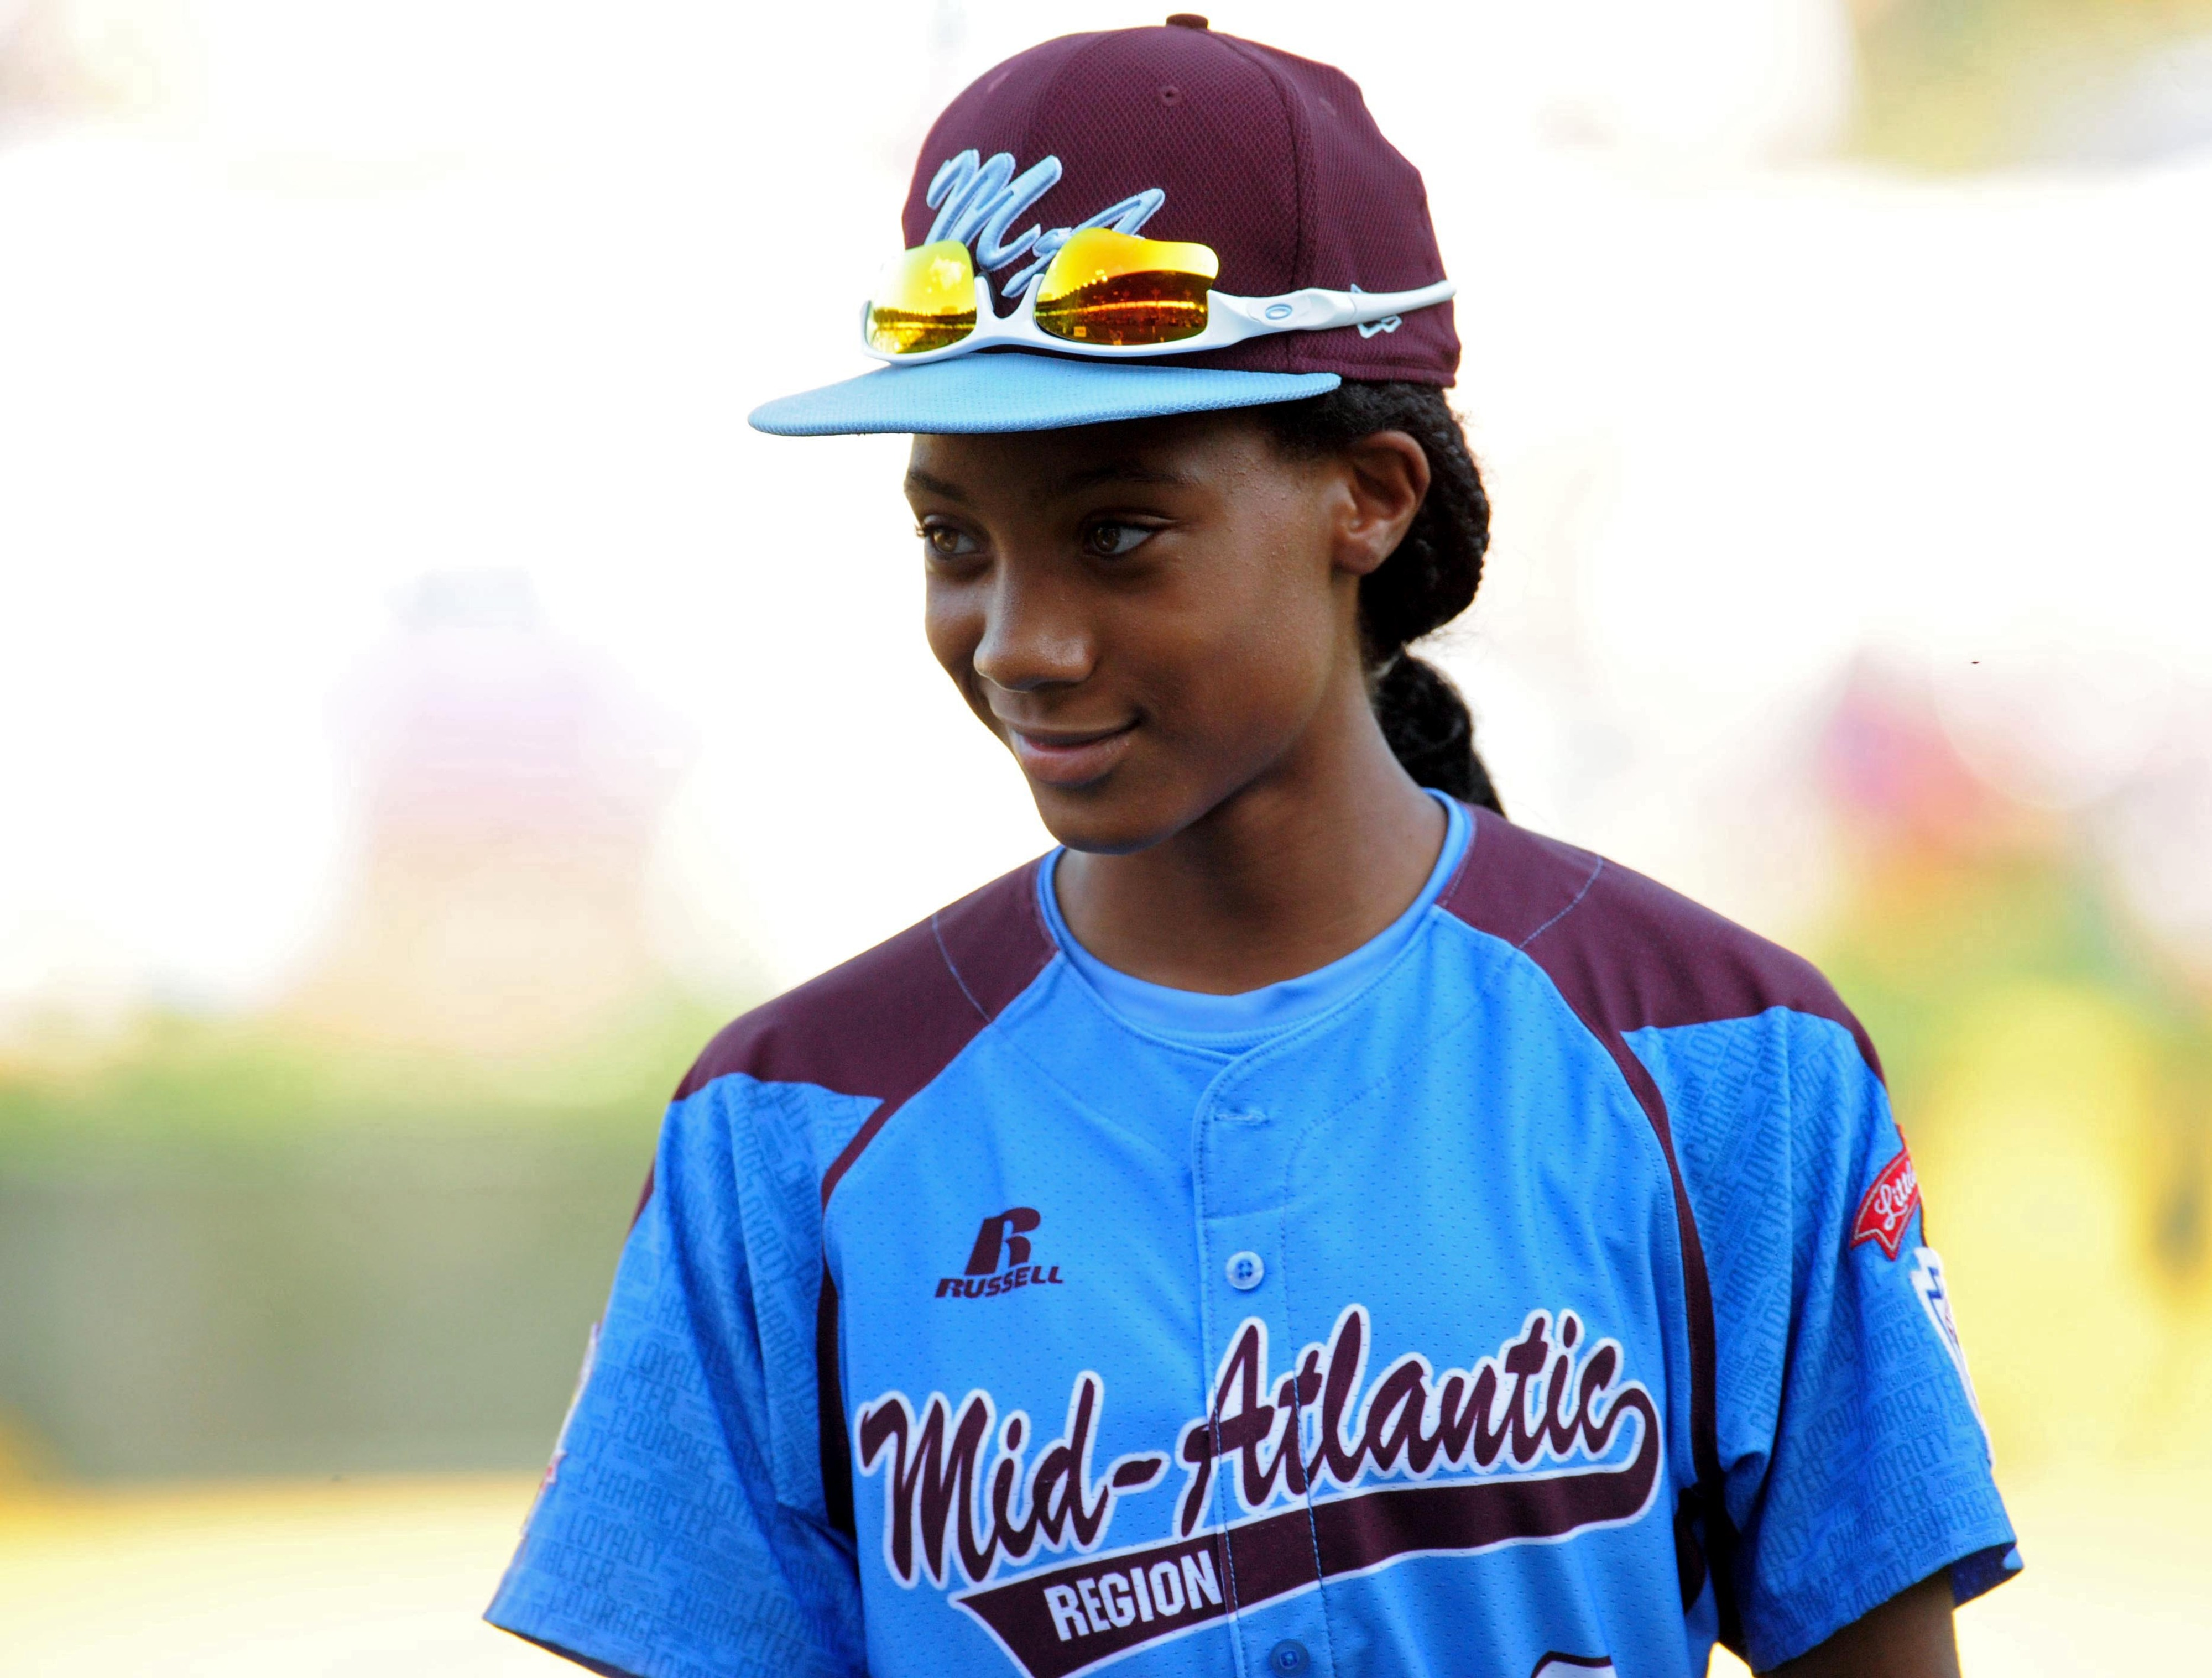 Mo'ne Davis is a kid, not a prospect or a gender pioneer